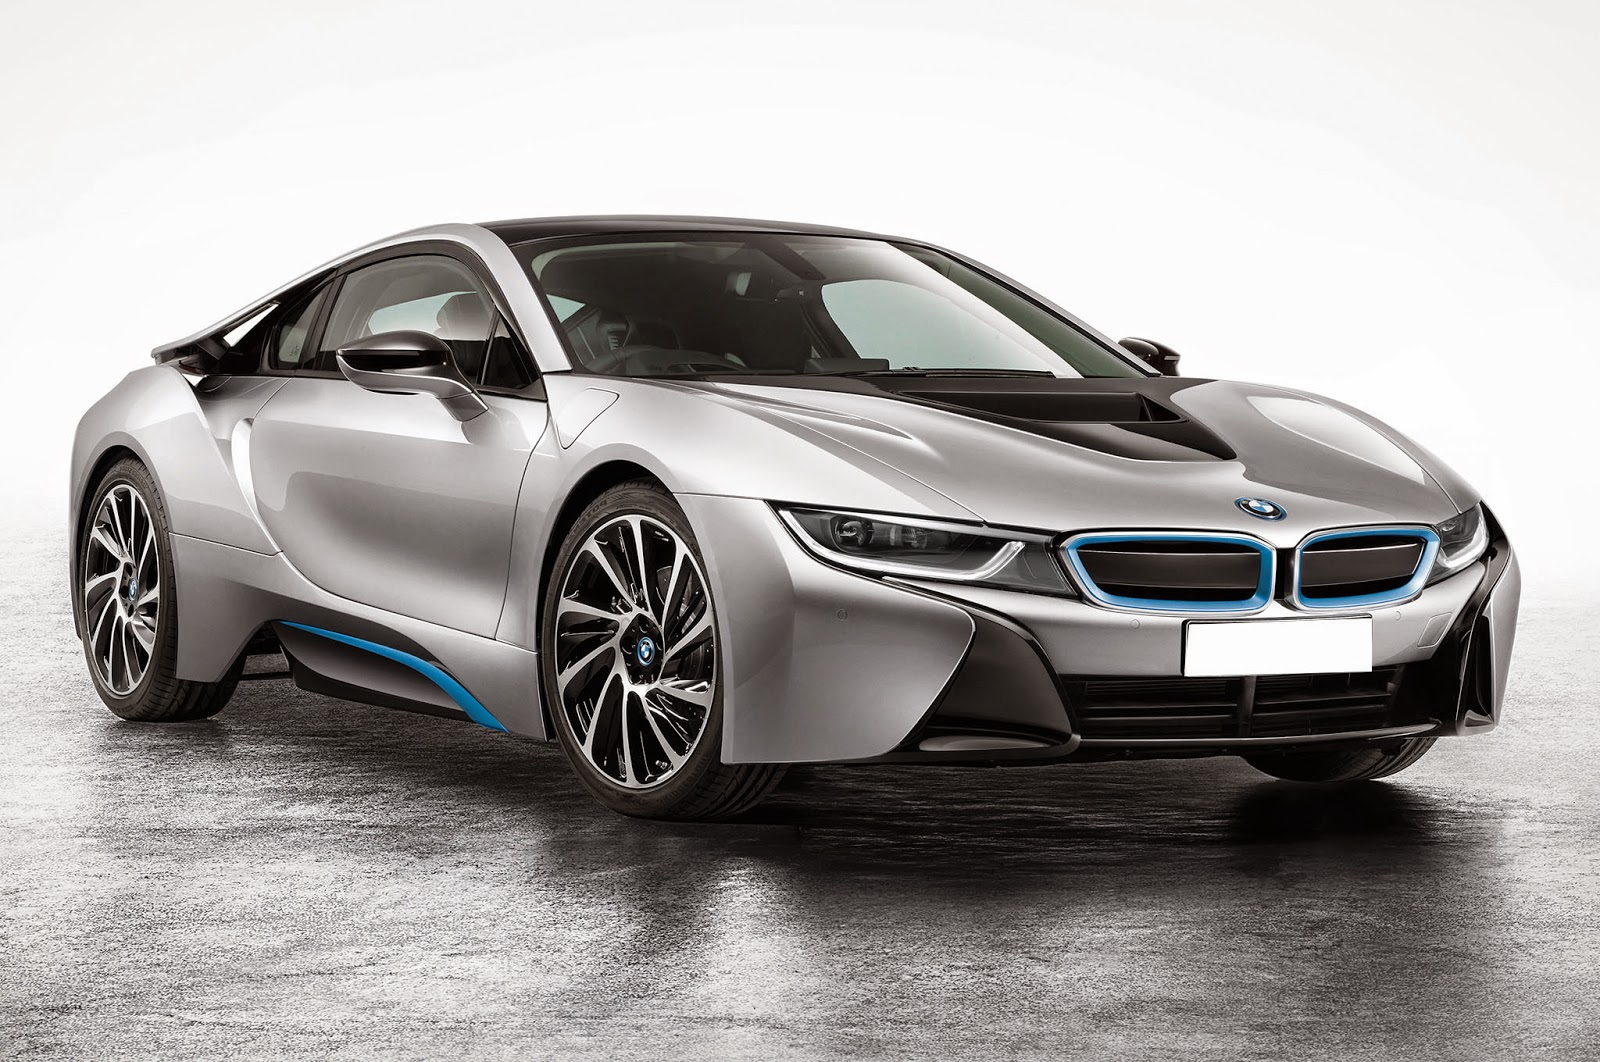 2015 Bmw I8 Price Car Interior Design